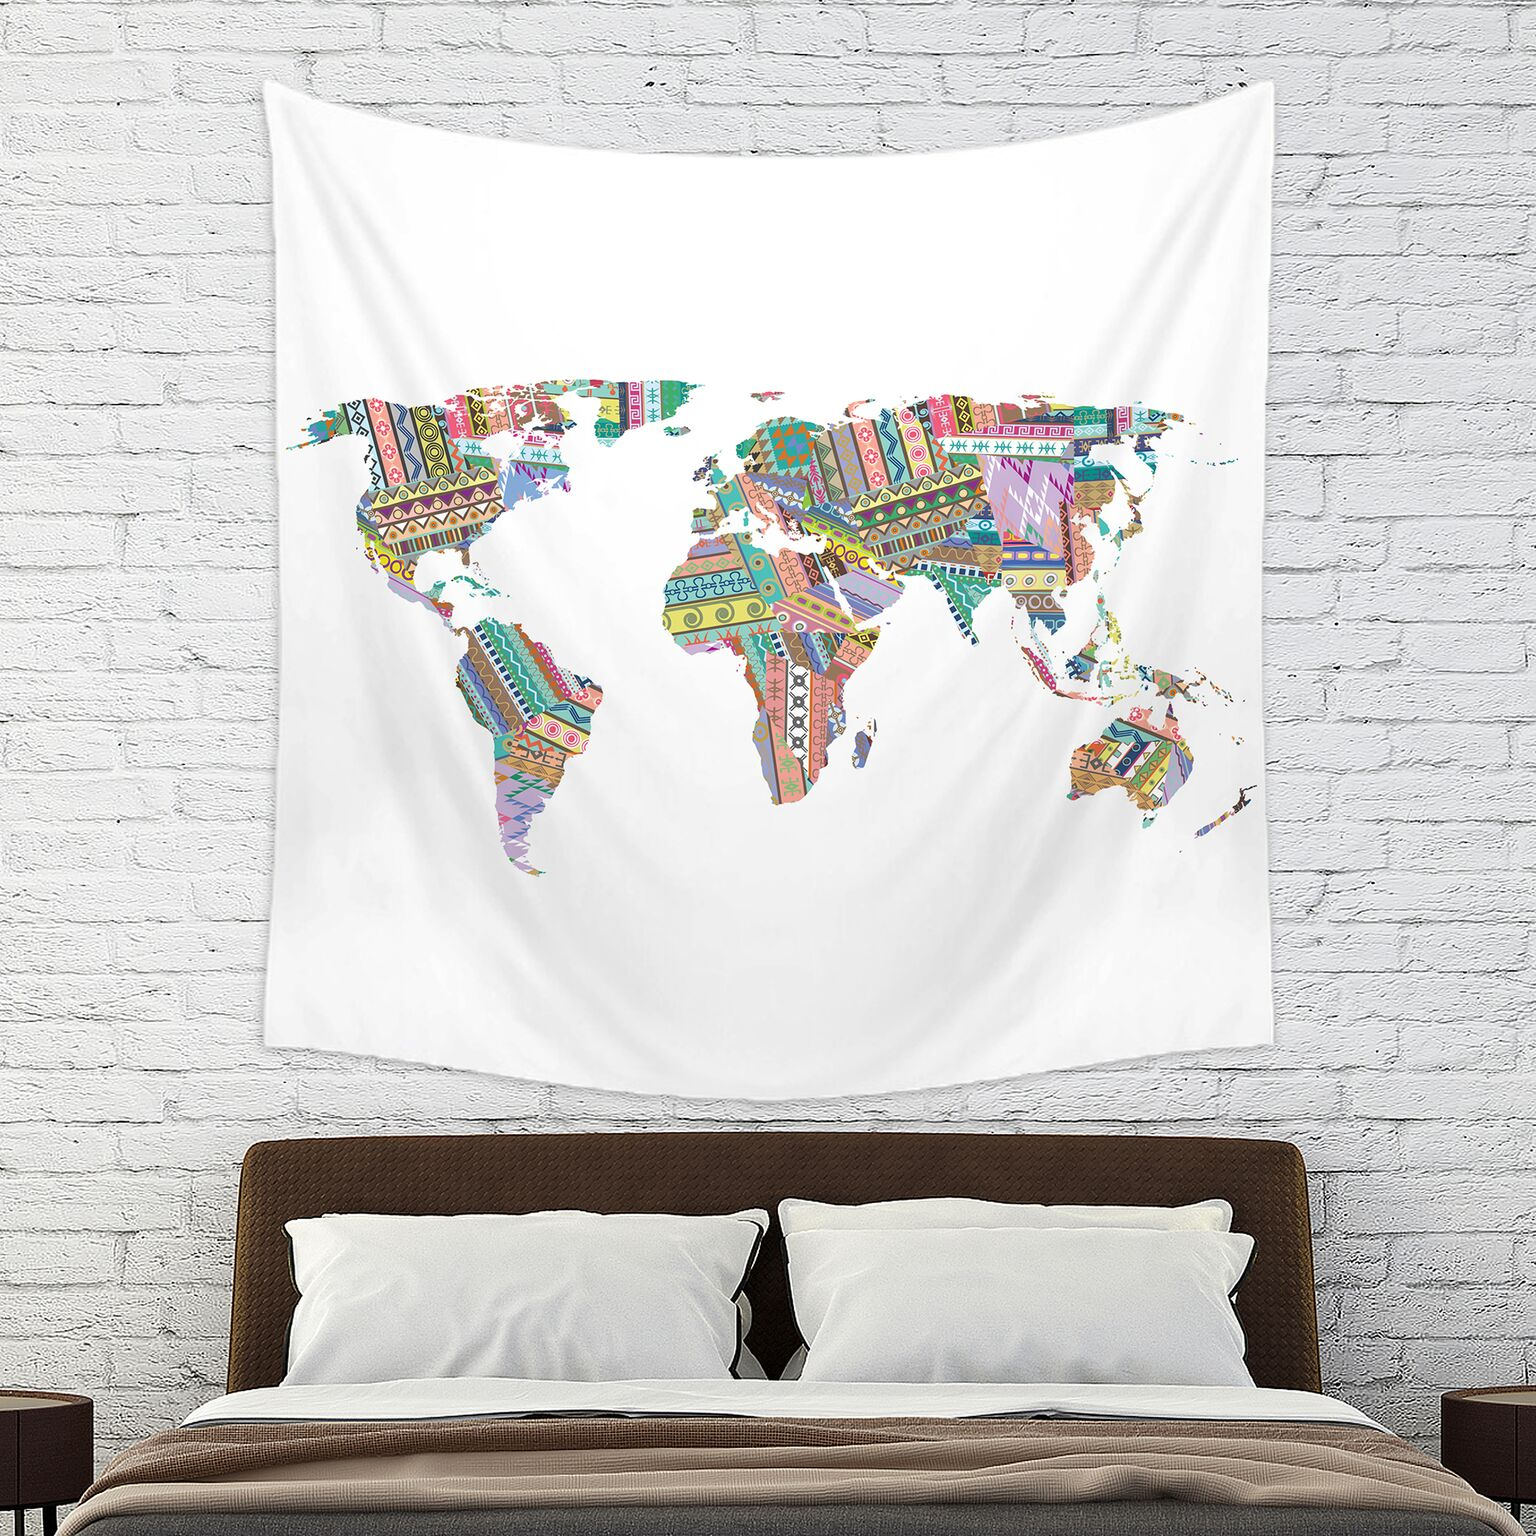 Mainstays World Wall Tapestry